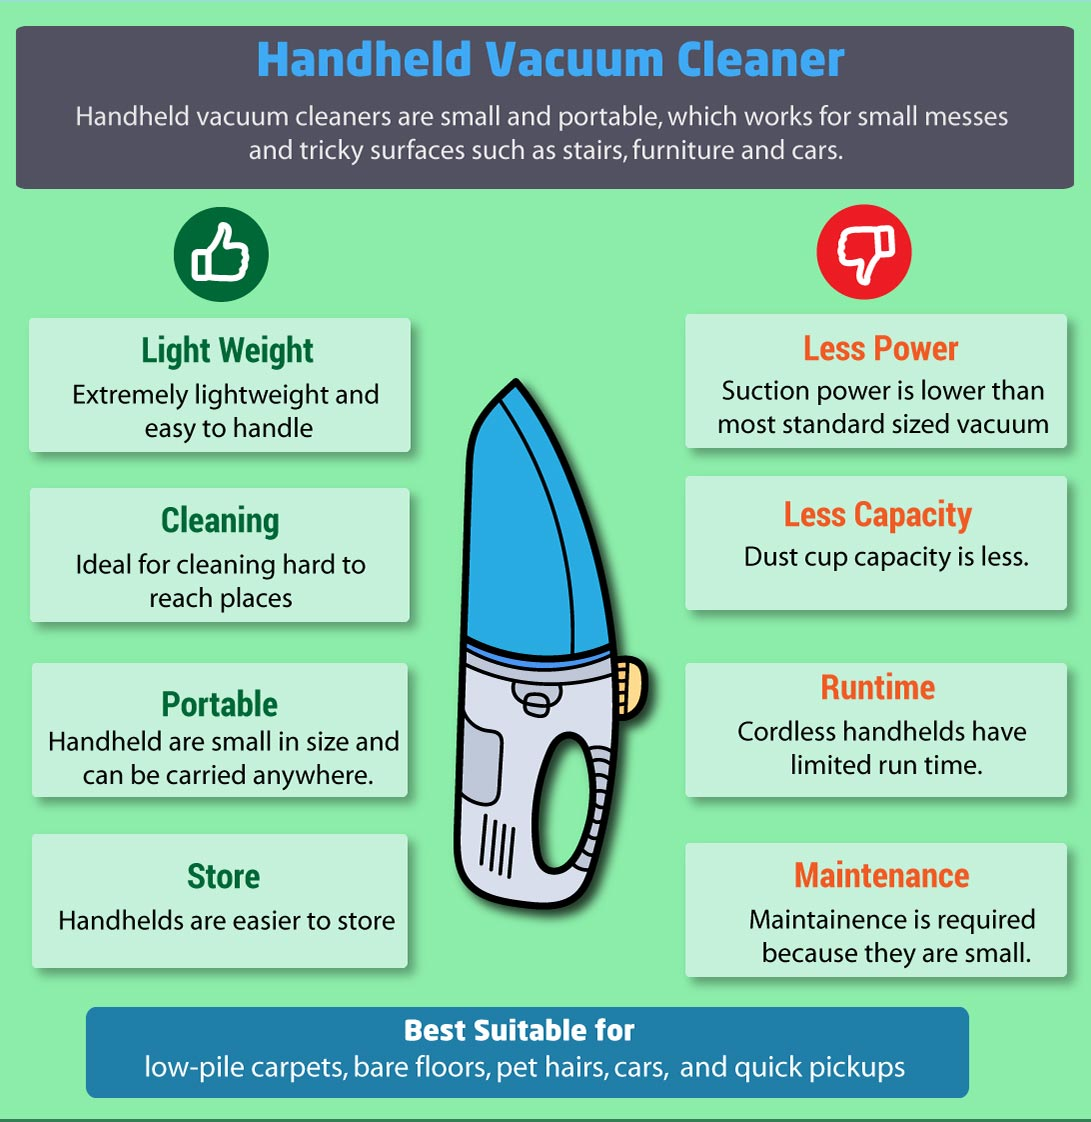 handheld vacuum cleaners pros and cons